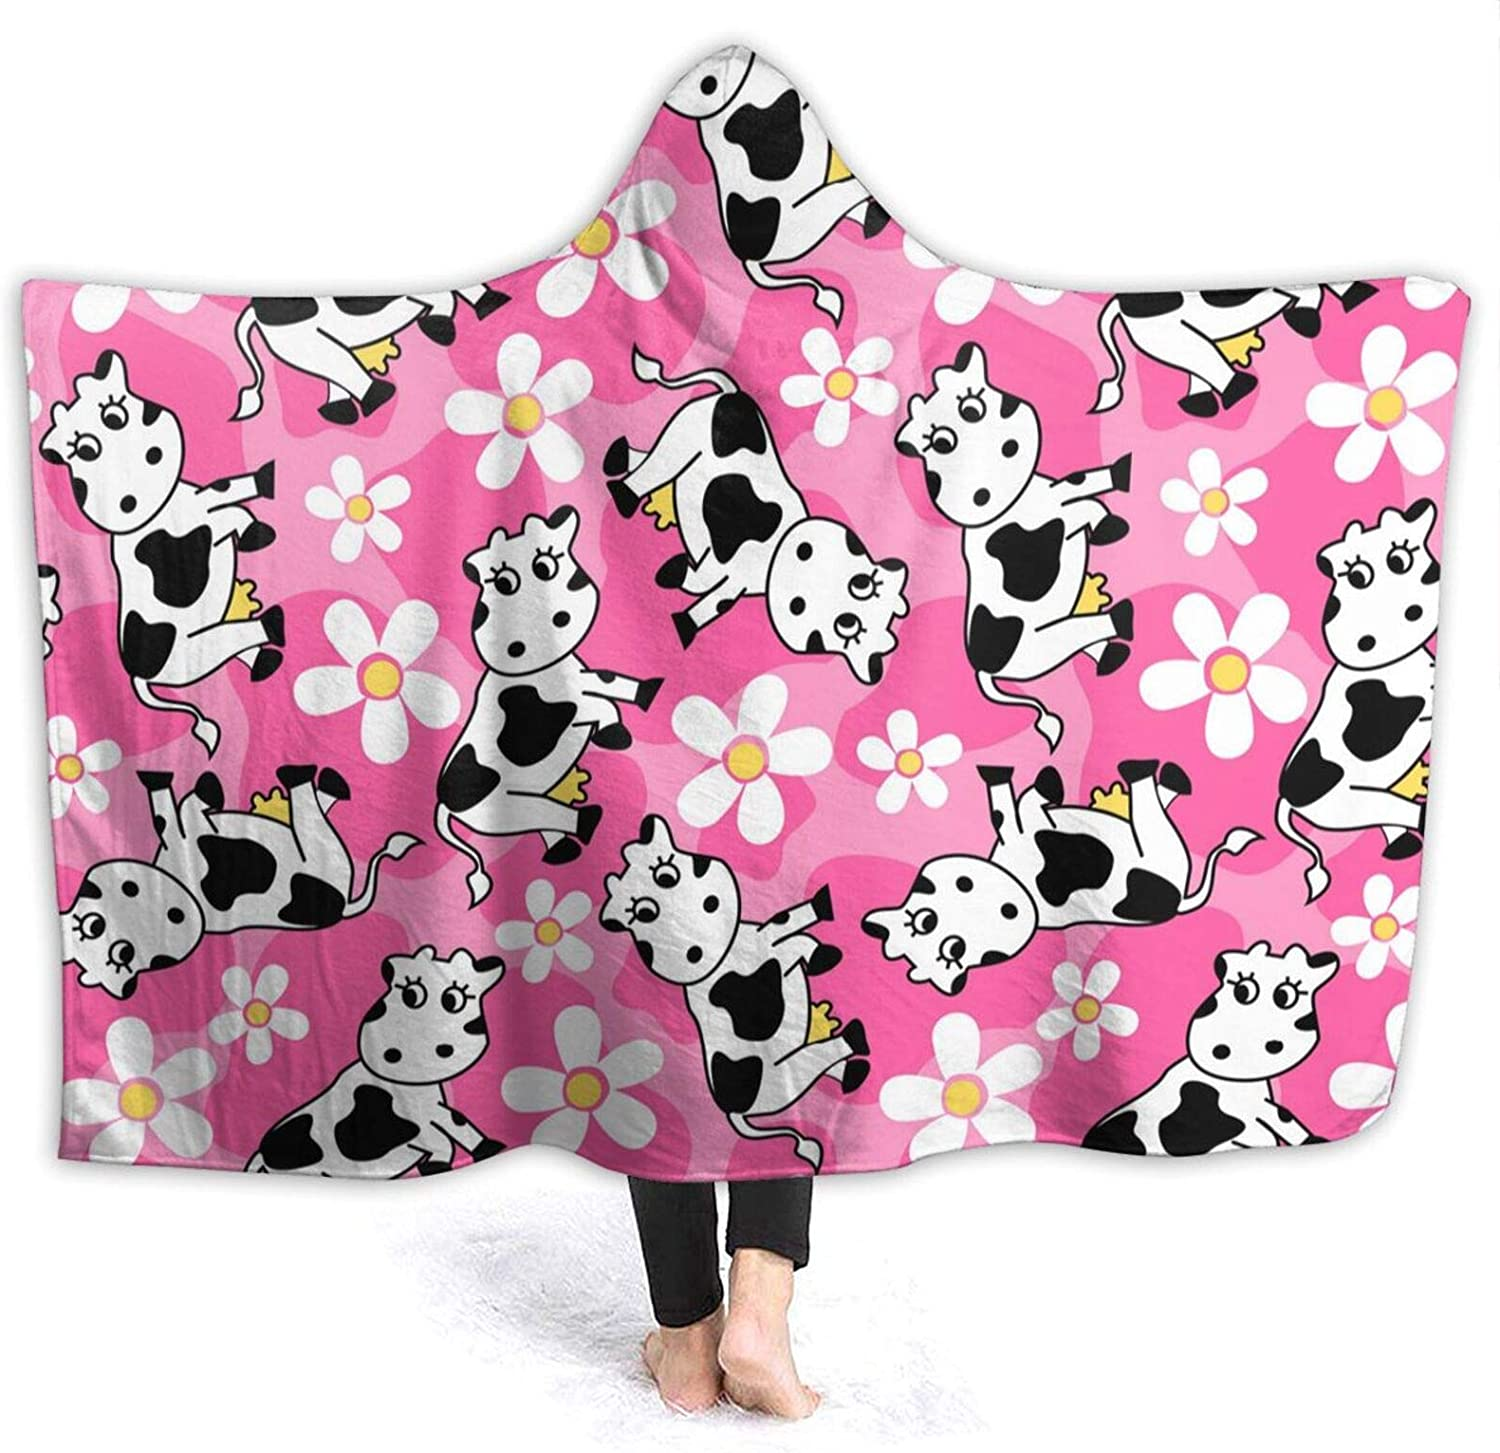 Challenge the lowest price NYIVBE Cute Cow and Flowers Hooded Soft Blanket Cozy Warm Super At the price